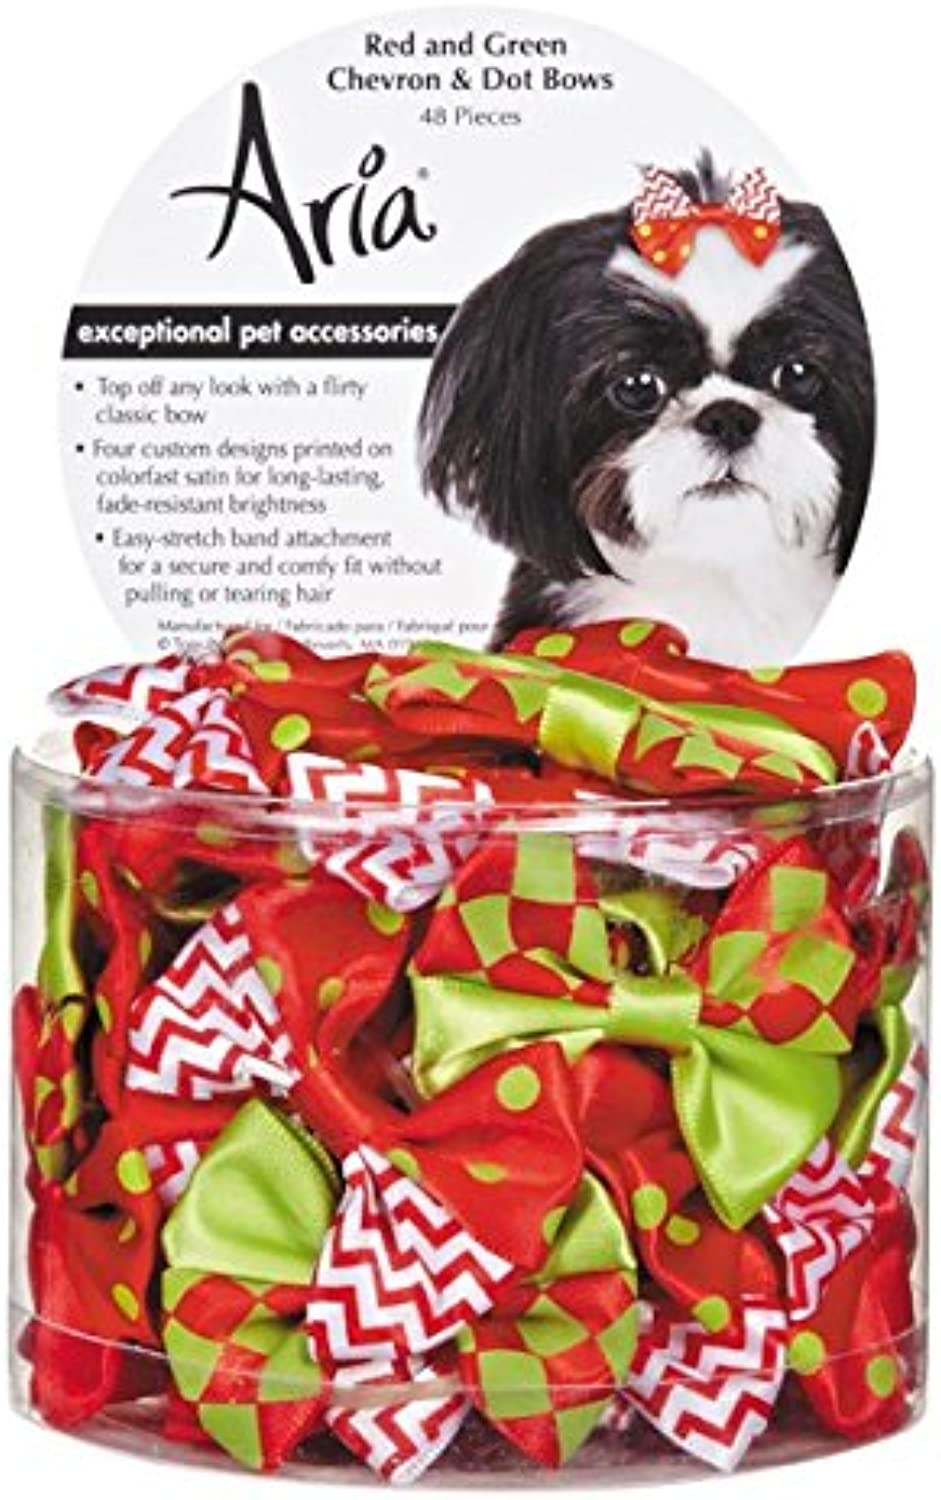 Aria and Green Chevron Dot Bows, 48 Pieces & Red nfzewp3585-New pet